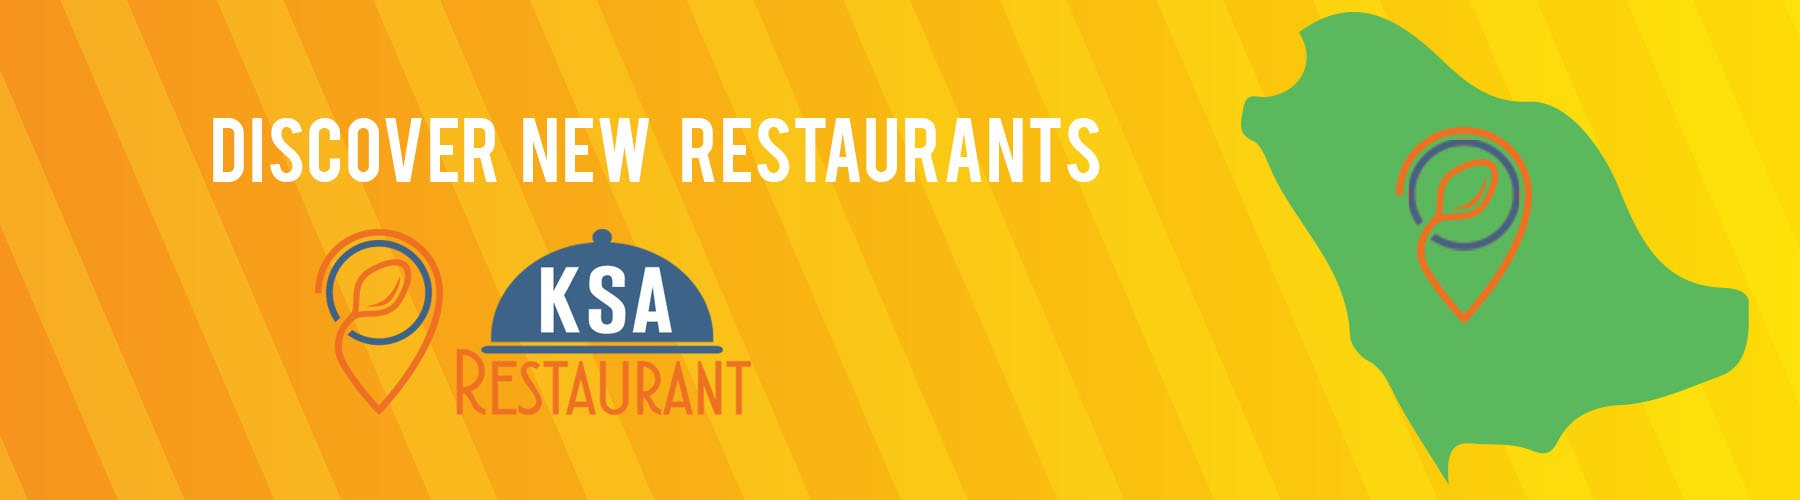 Discover new restaurants in Saudi Arabia.